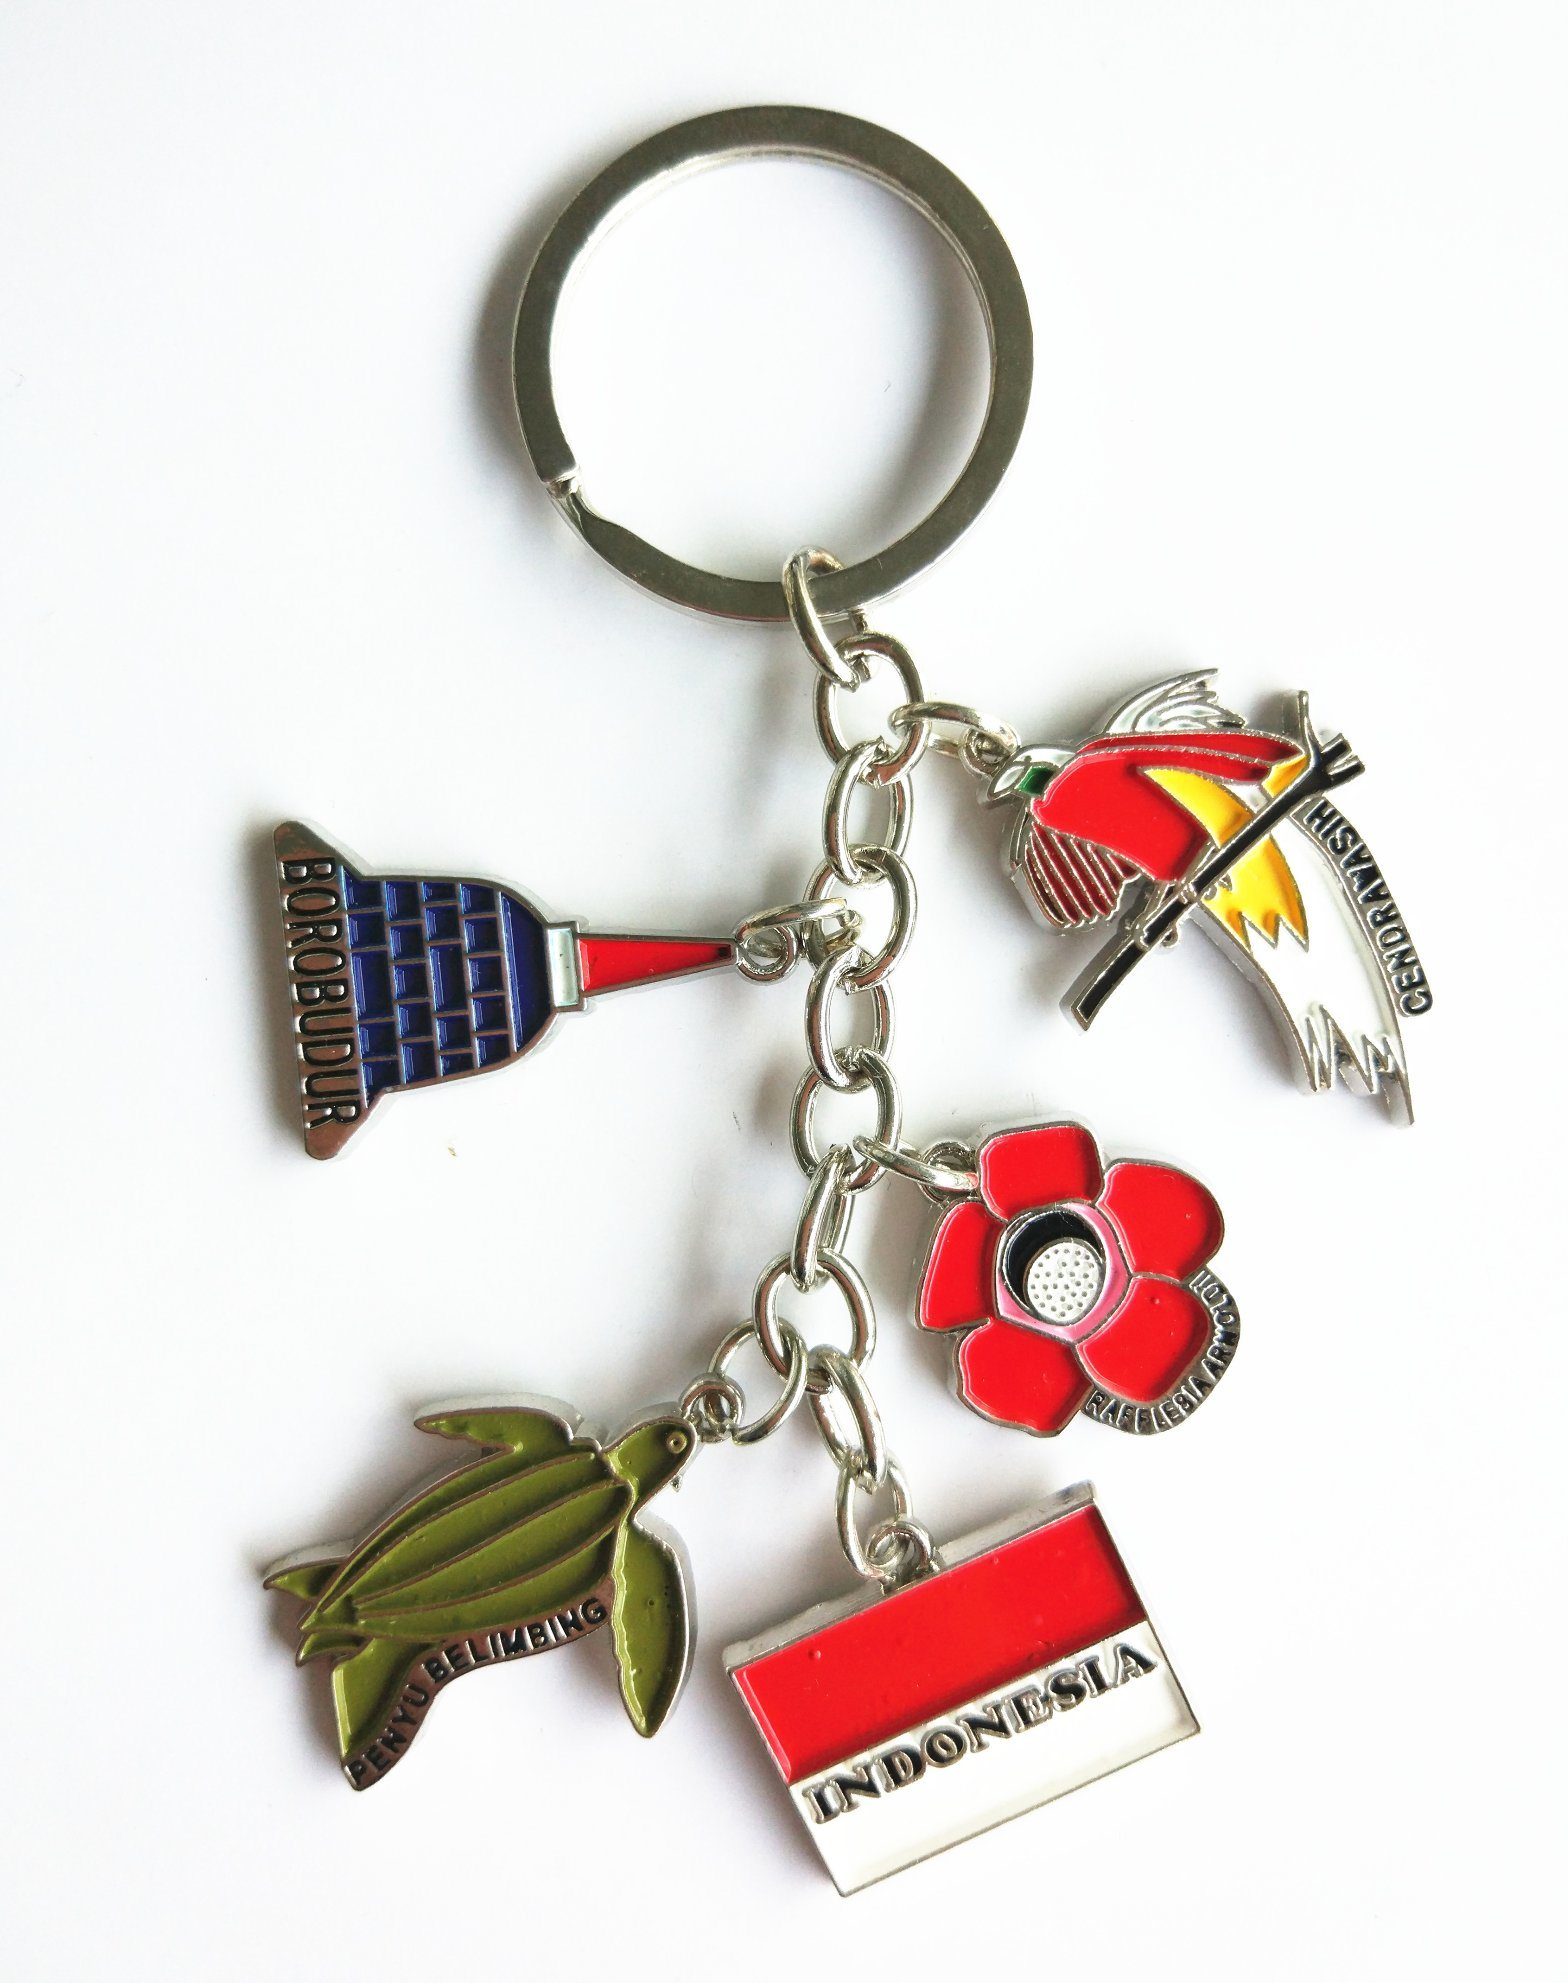 Souvenir Gift- Split Metal Key Chain Key Ring Color Painting with Small Logo Keychain Keyrings Key Holder